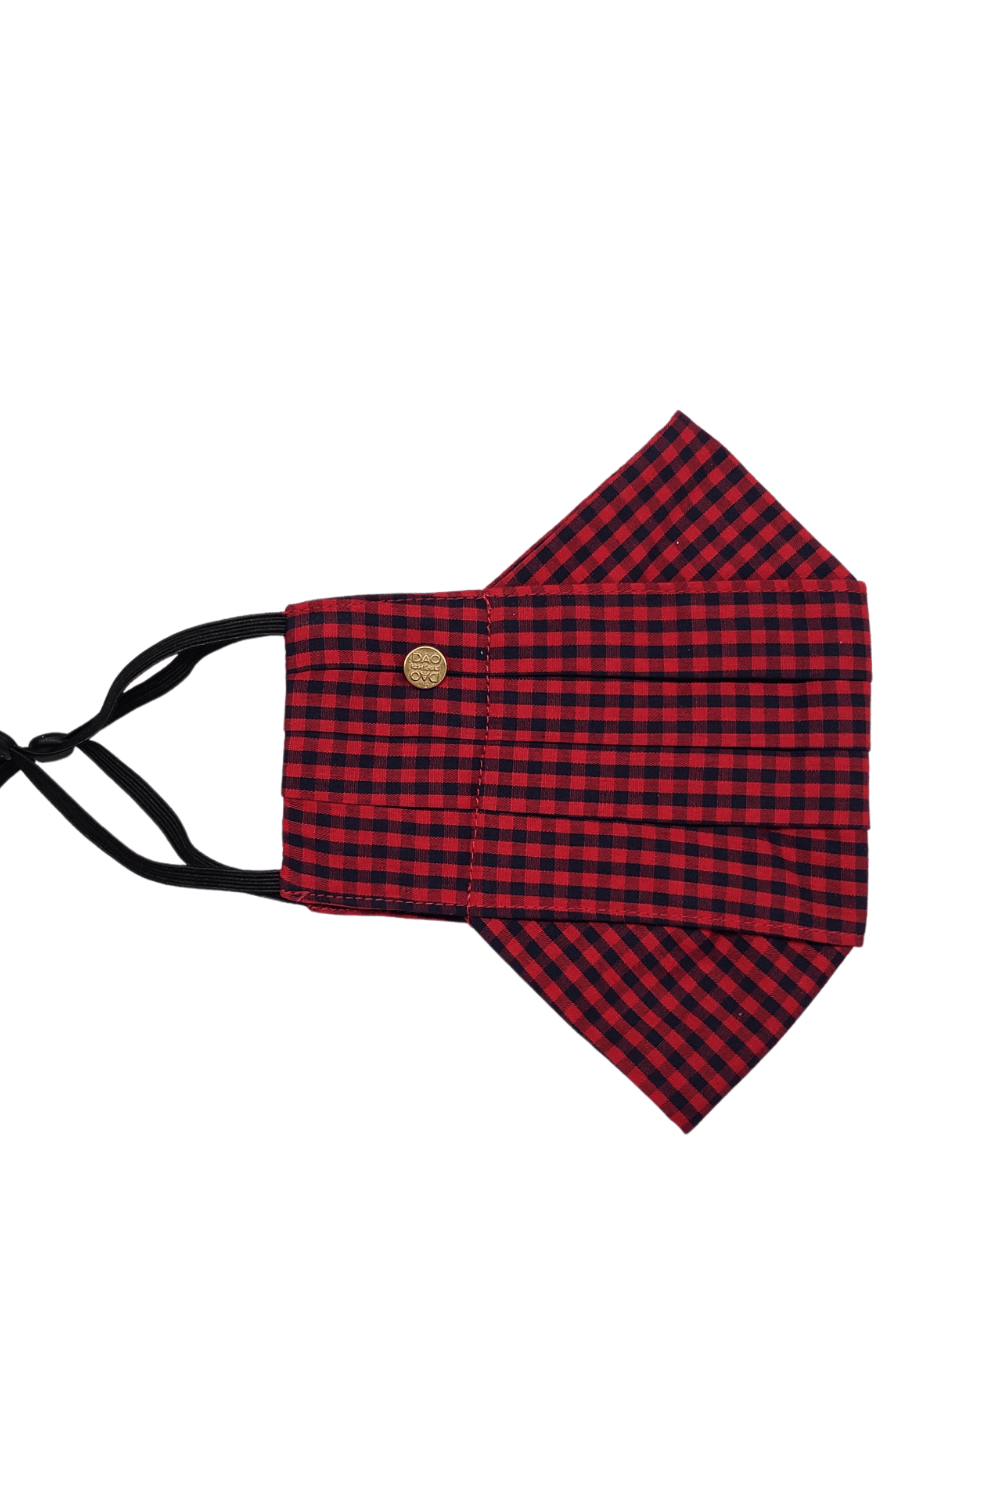 Safely Sip Face Mask Safely Sip Mask in Red and Black Gingham - Chloe Dao